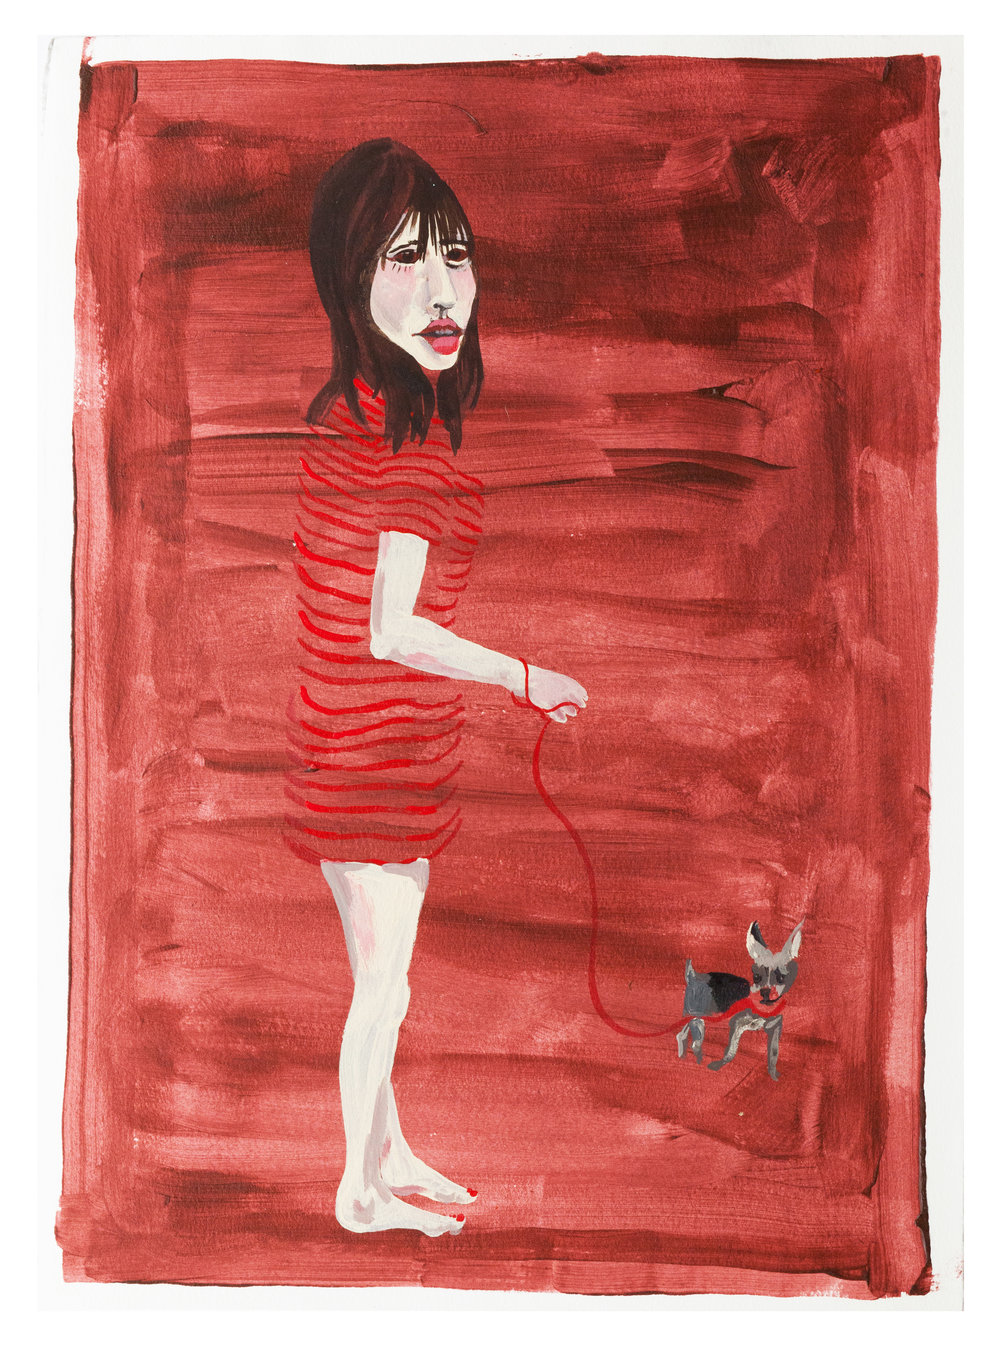 || red girl and dog. || dimension || acrylic on paper || 2016. ||